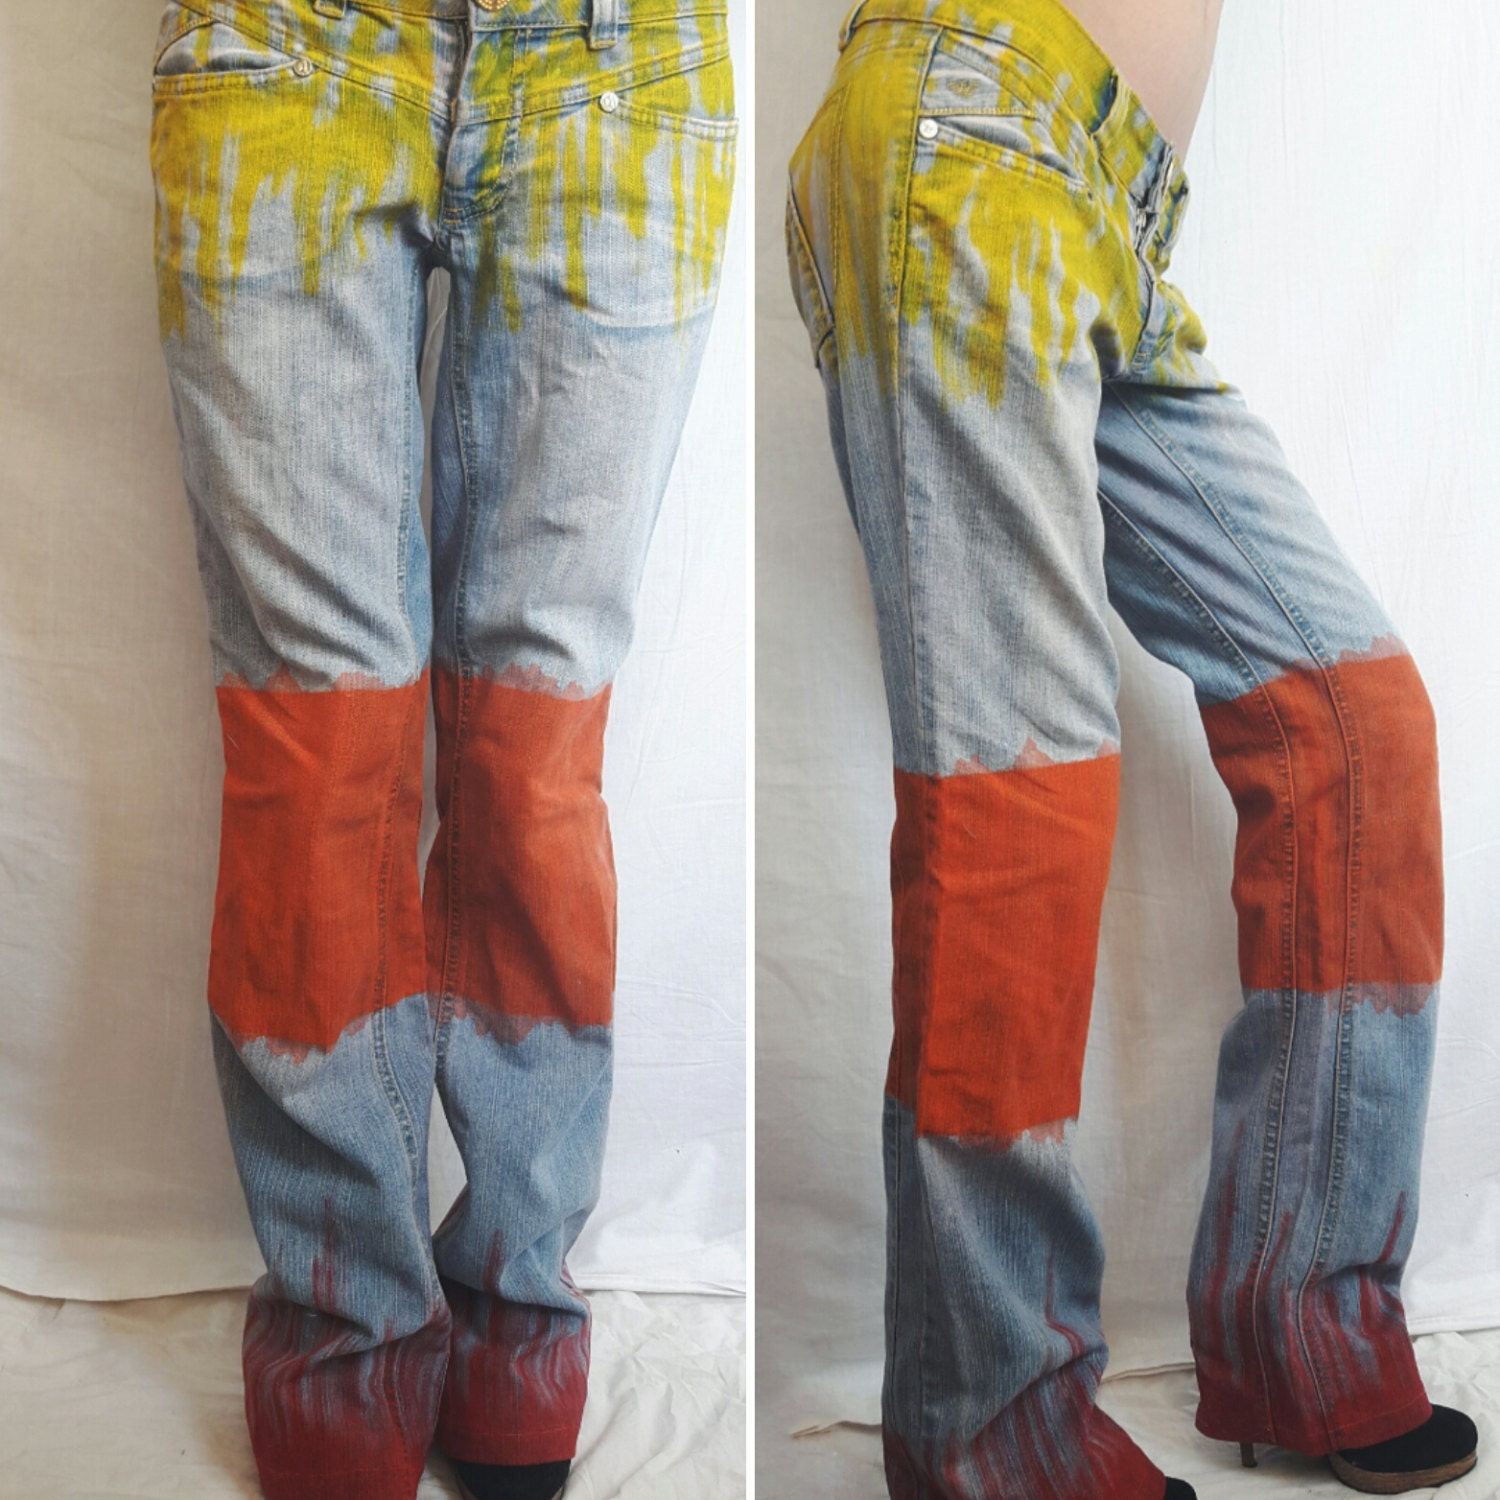 hand painted jeans with low waist straight jeans painted in. Black Bedroom Furniture Sets. Home Design Ideas